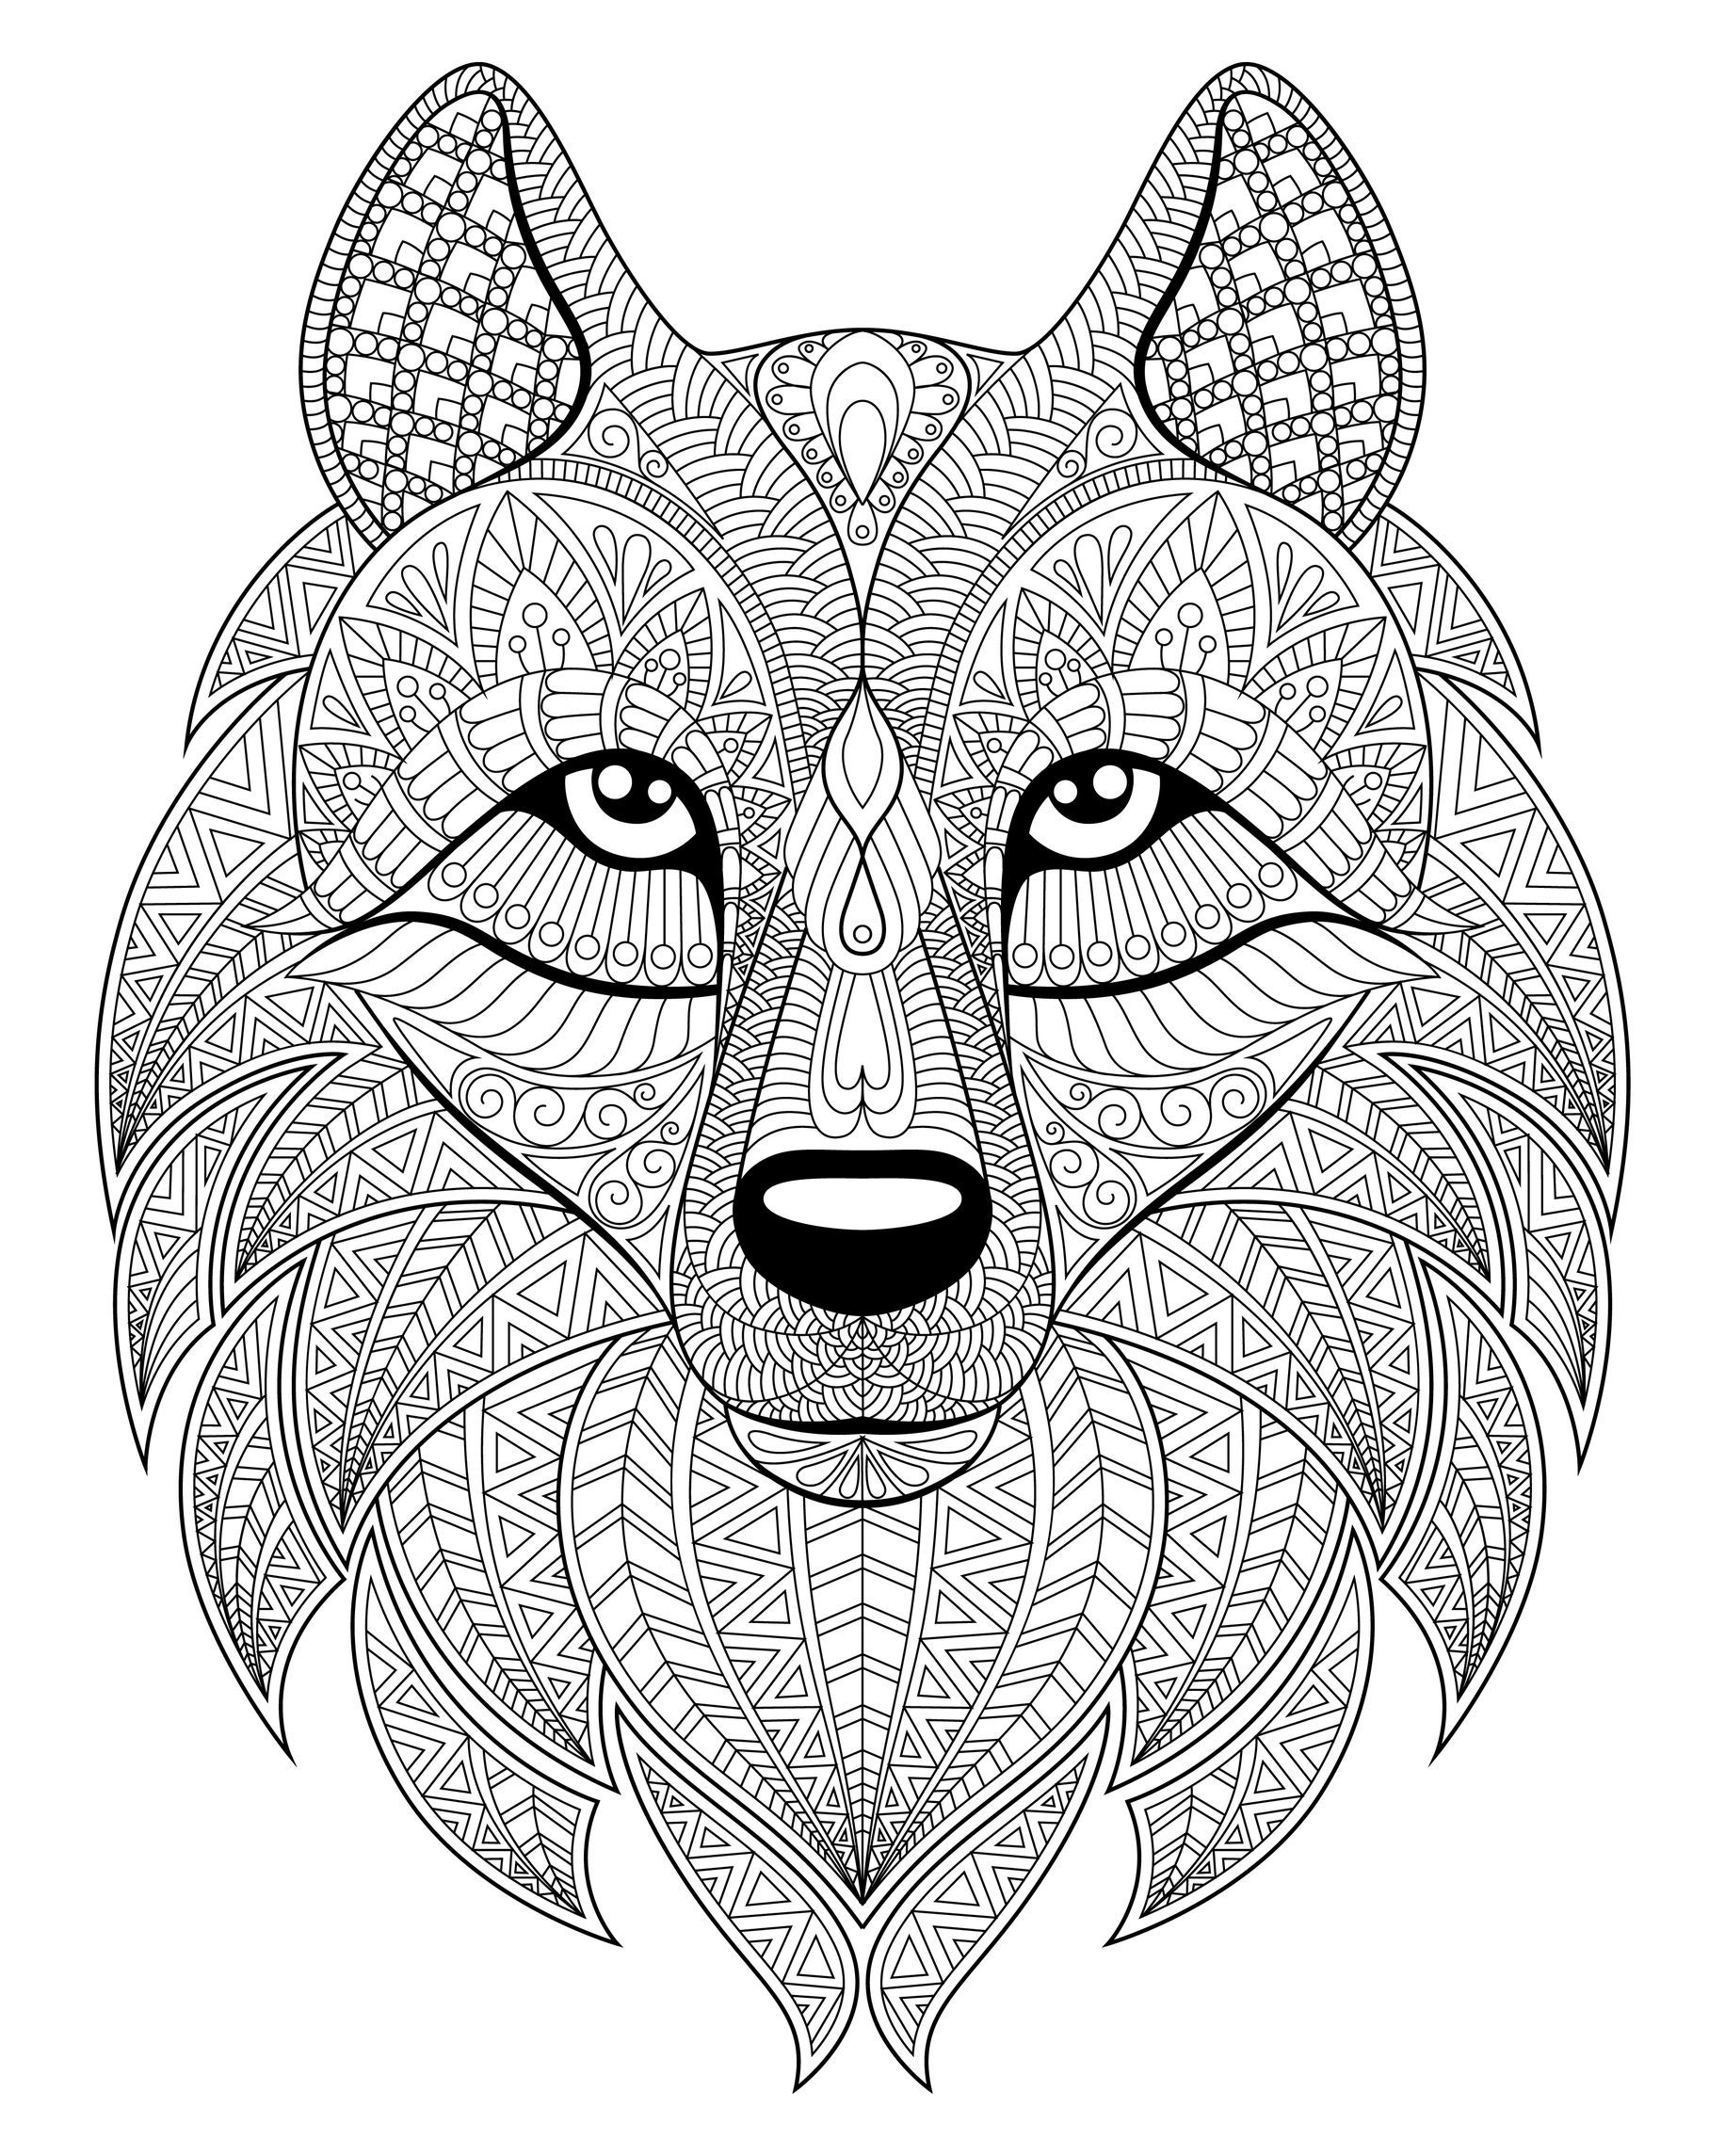 Coloring Pages For Adults Wolf : coloring, pages, adults, Animal, Drawings, Coloring